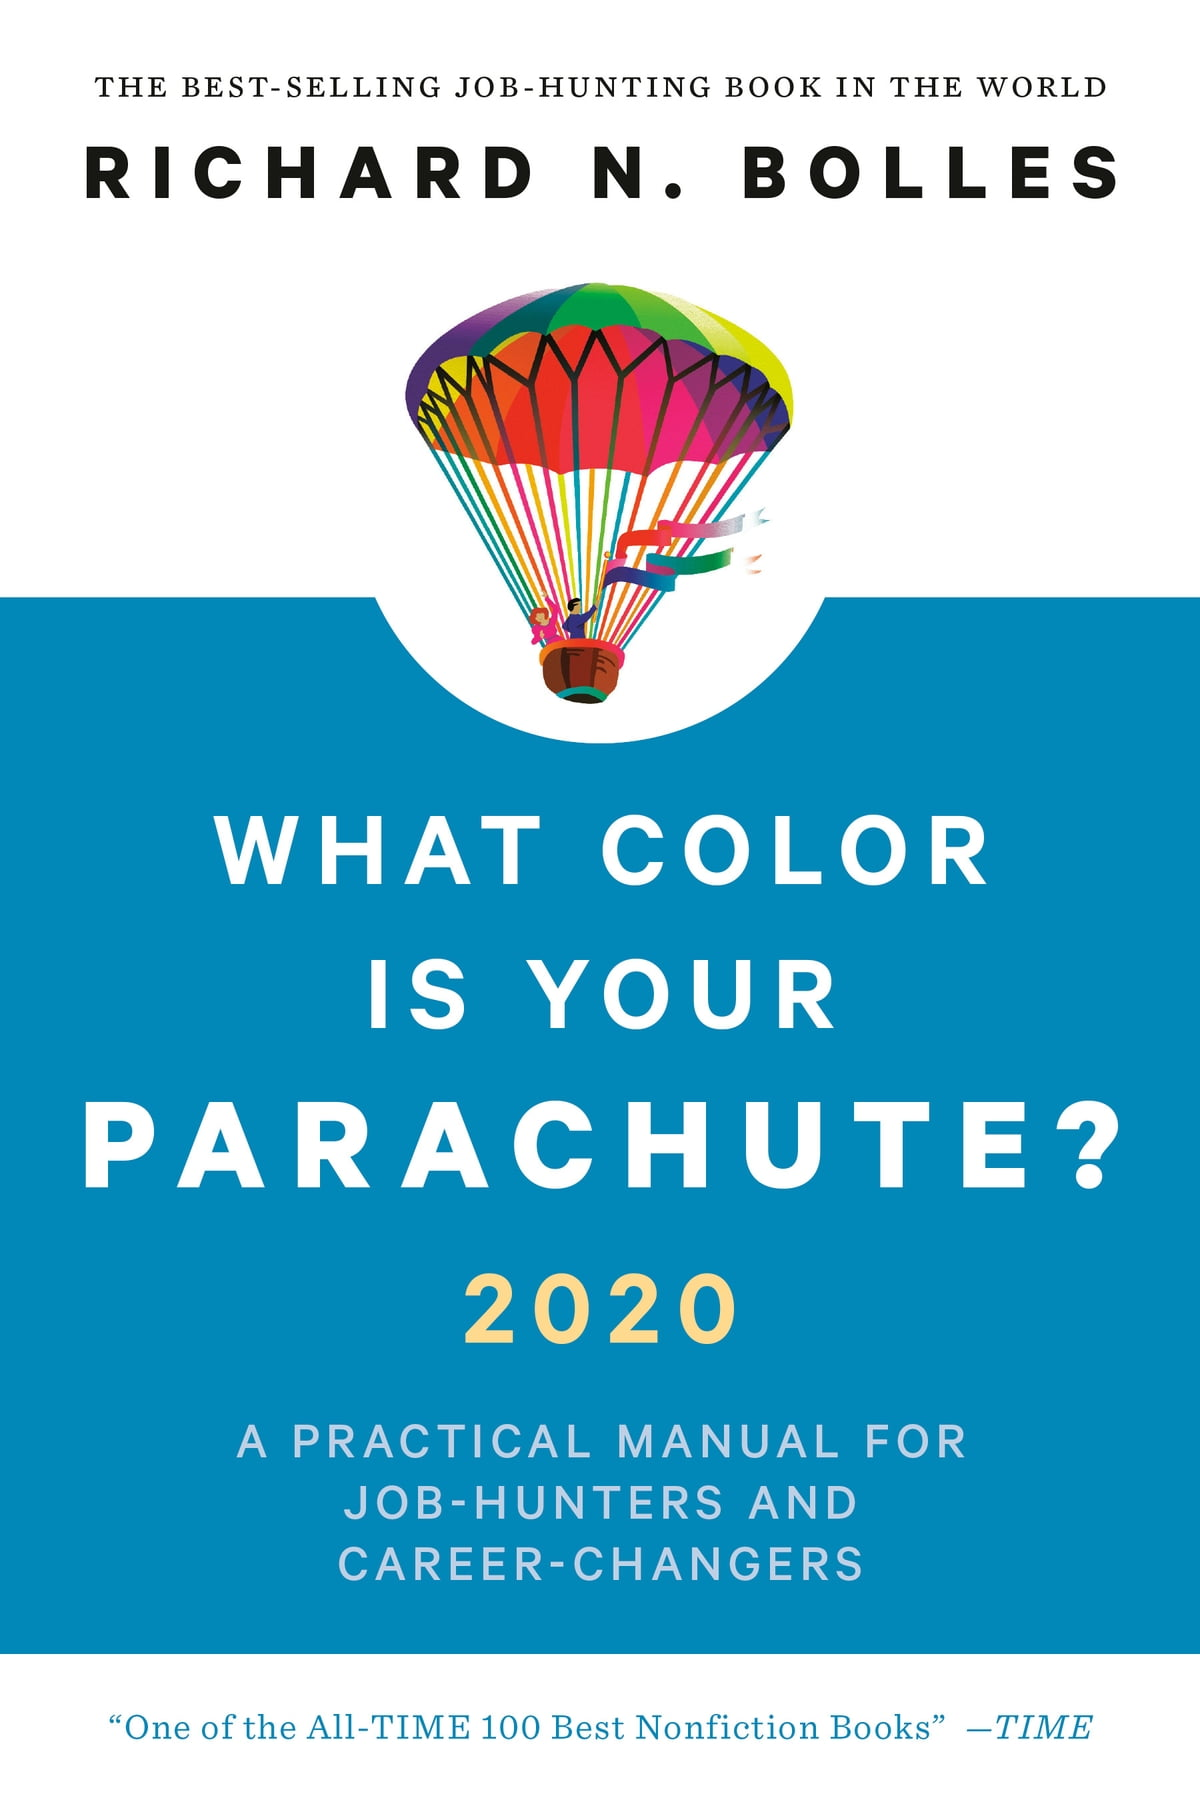 Best Non Fiction Books 2020 What Color Is Your Parachute? 2020 eBook by Richard N. Bolles